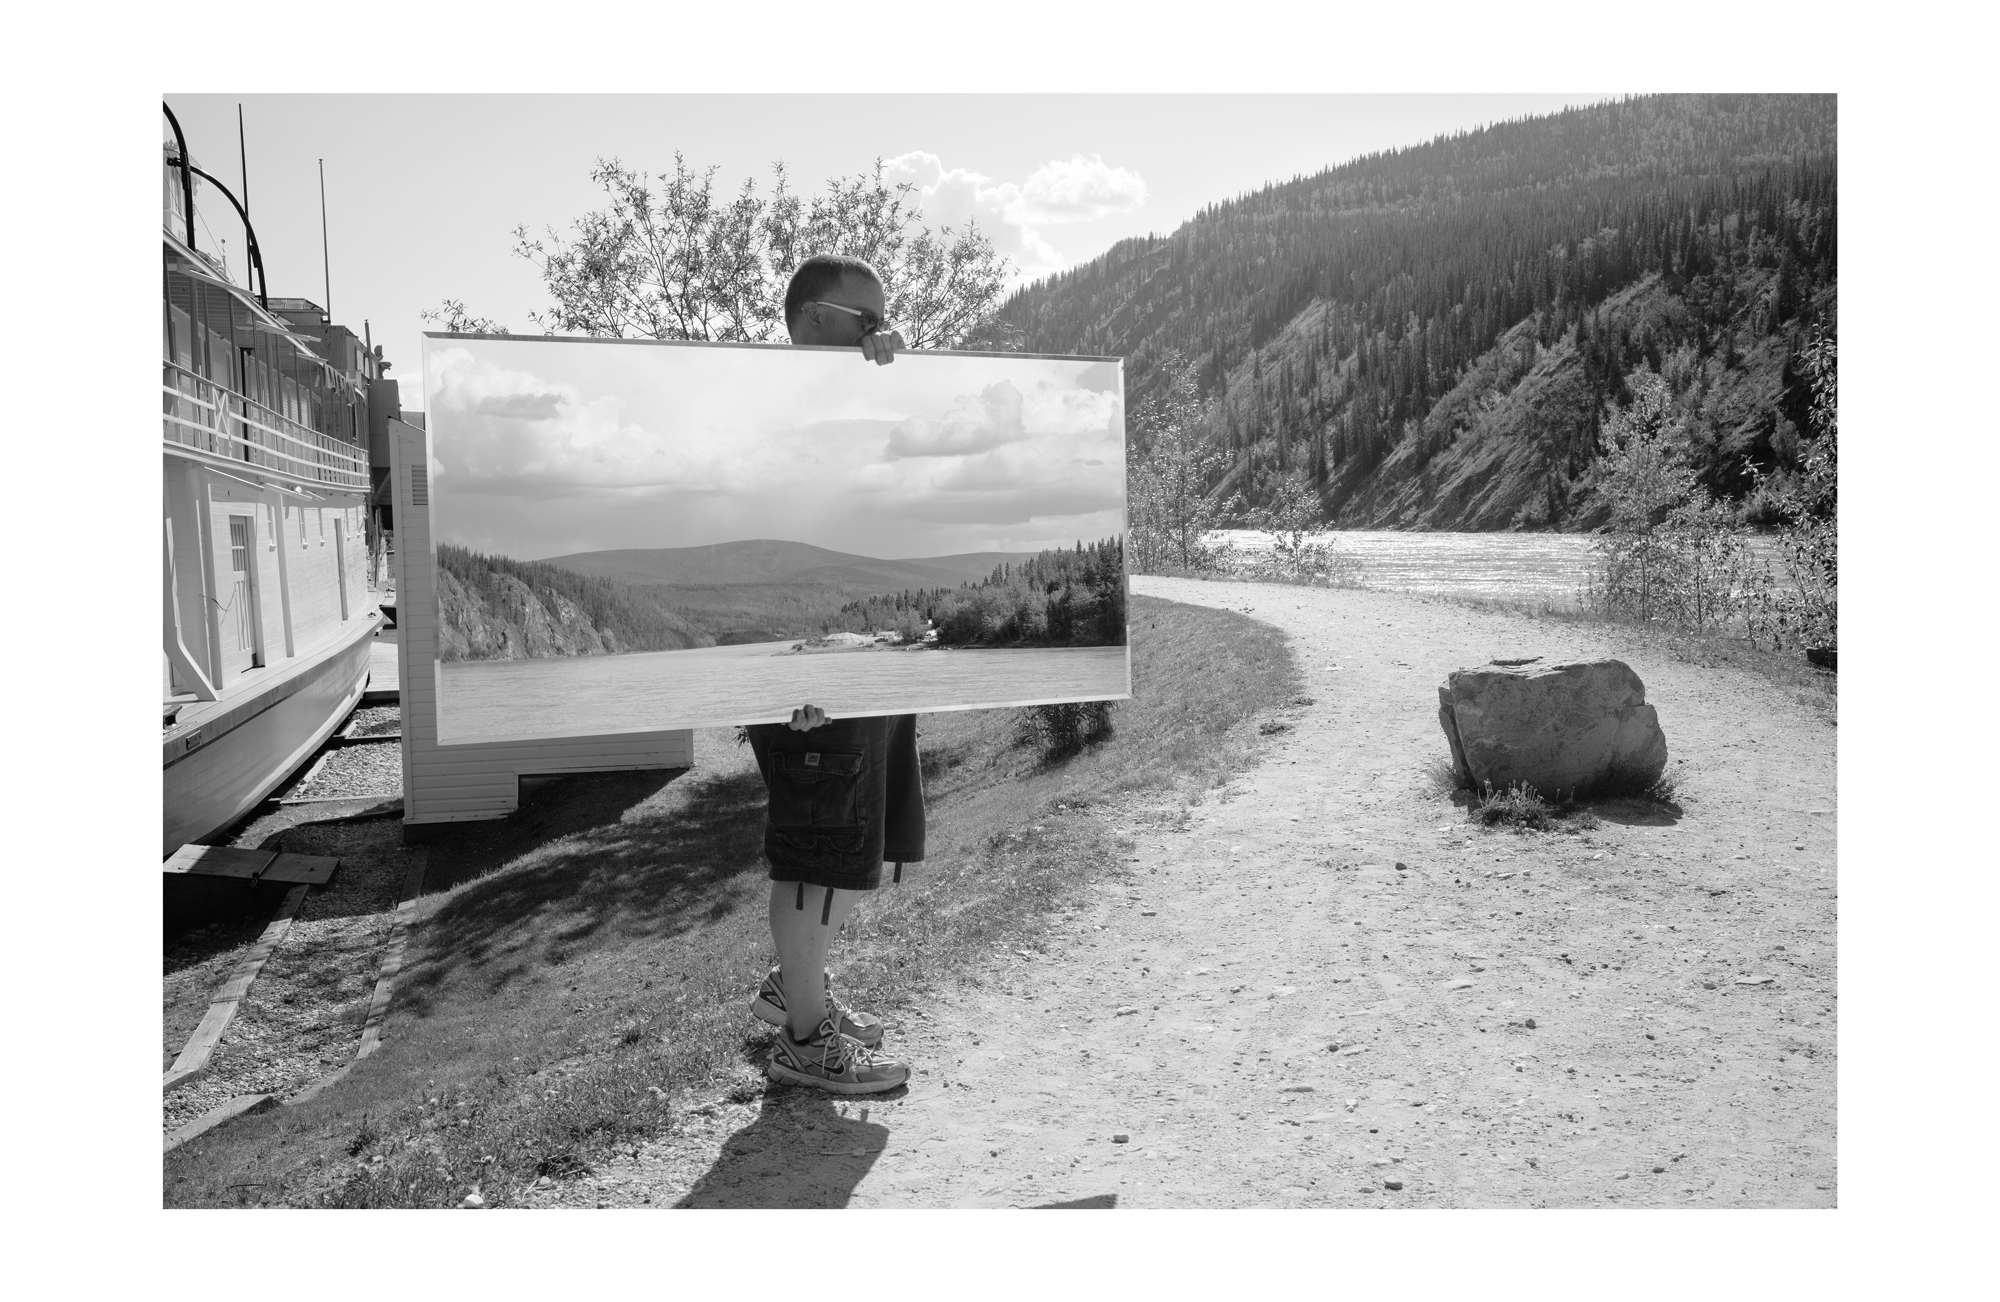 Dawson Looking Glass 1, 2015, documentation of performance (photographic print, 40 x 26 inches, edition of 5, 1 artist proof)